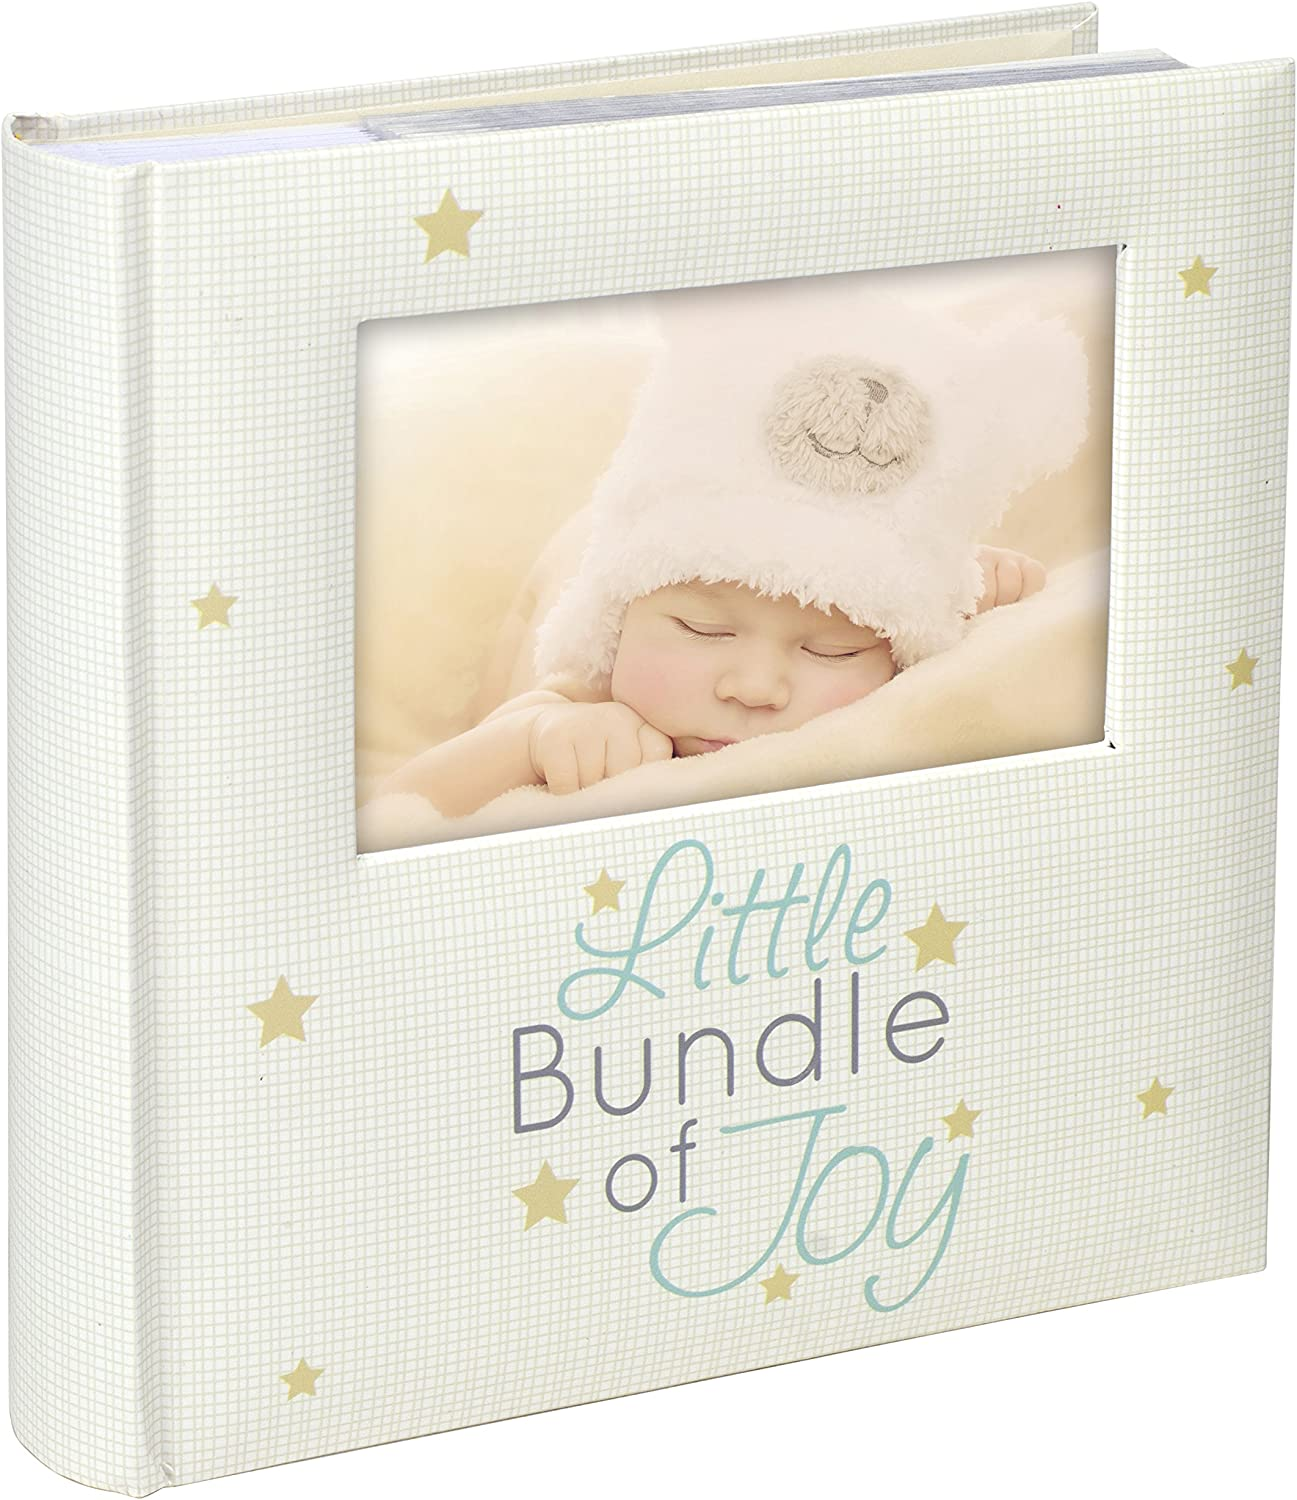 Amazon Com Malden International Designs Little Bundle Of Joy With Photo Opening Cover Photo Album 160 4x6 White Arts Crafts Sewing